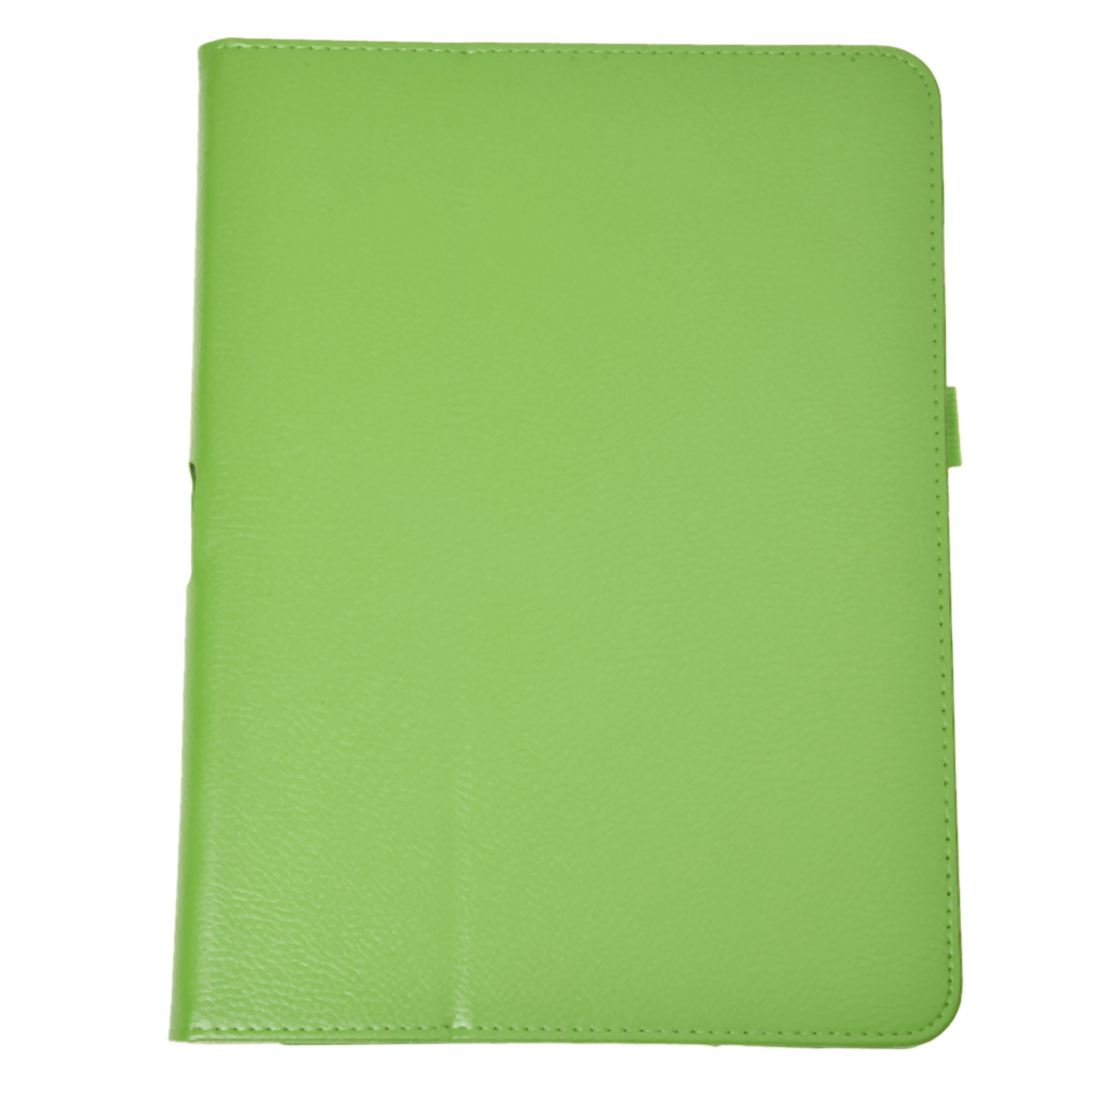 PU Leather Folio Case Cover For Samsung Galaxy Tab 4 T530 10.1 folio cover